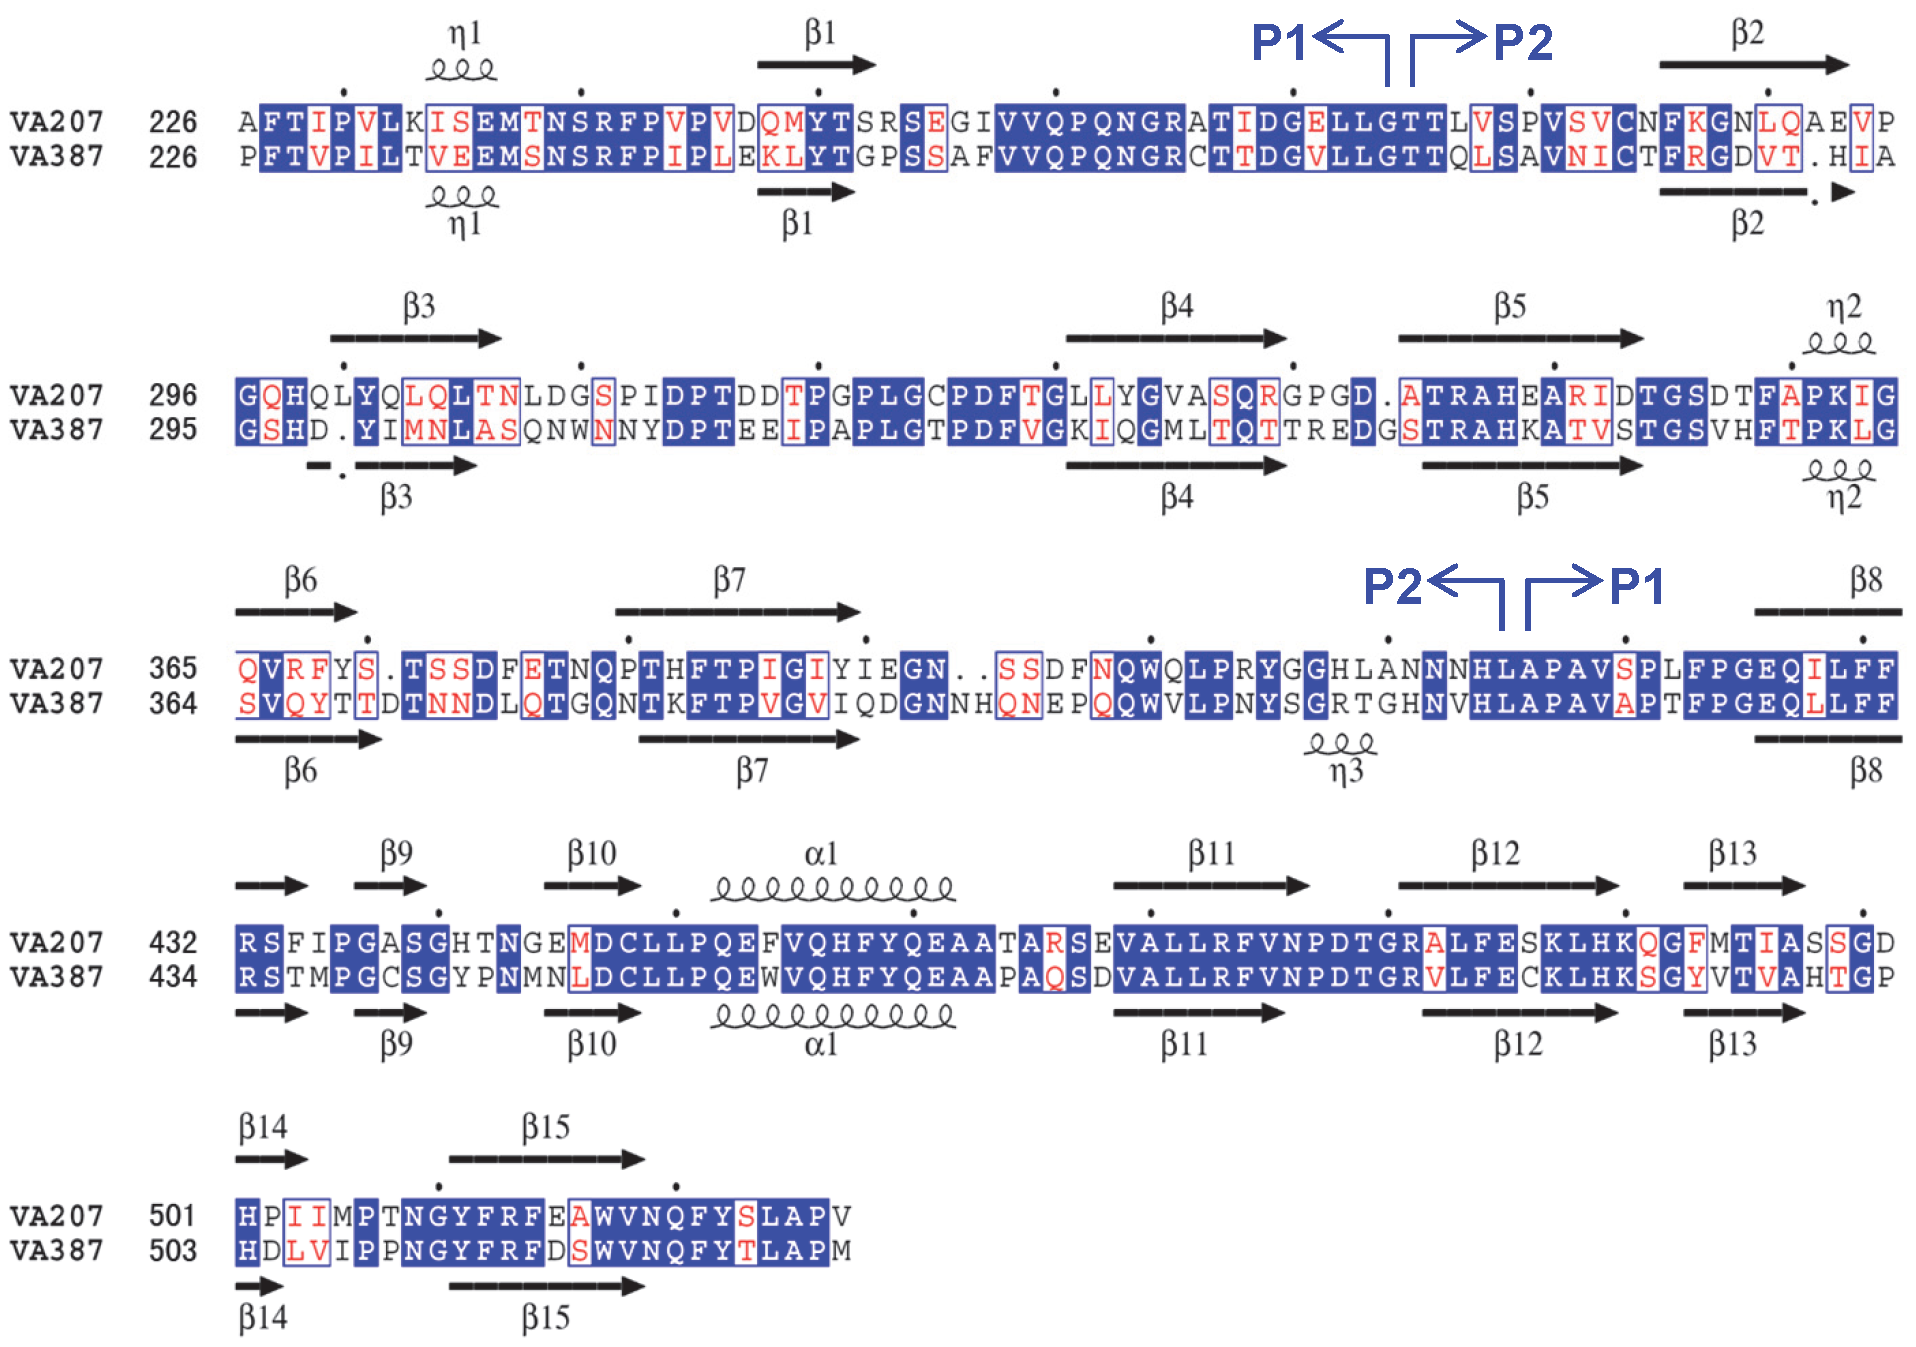 Structure-based sequence alignment between VA207 and VA387 P domains.